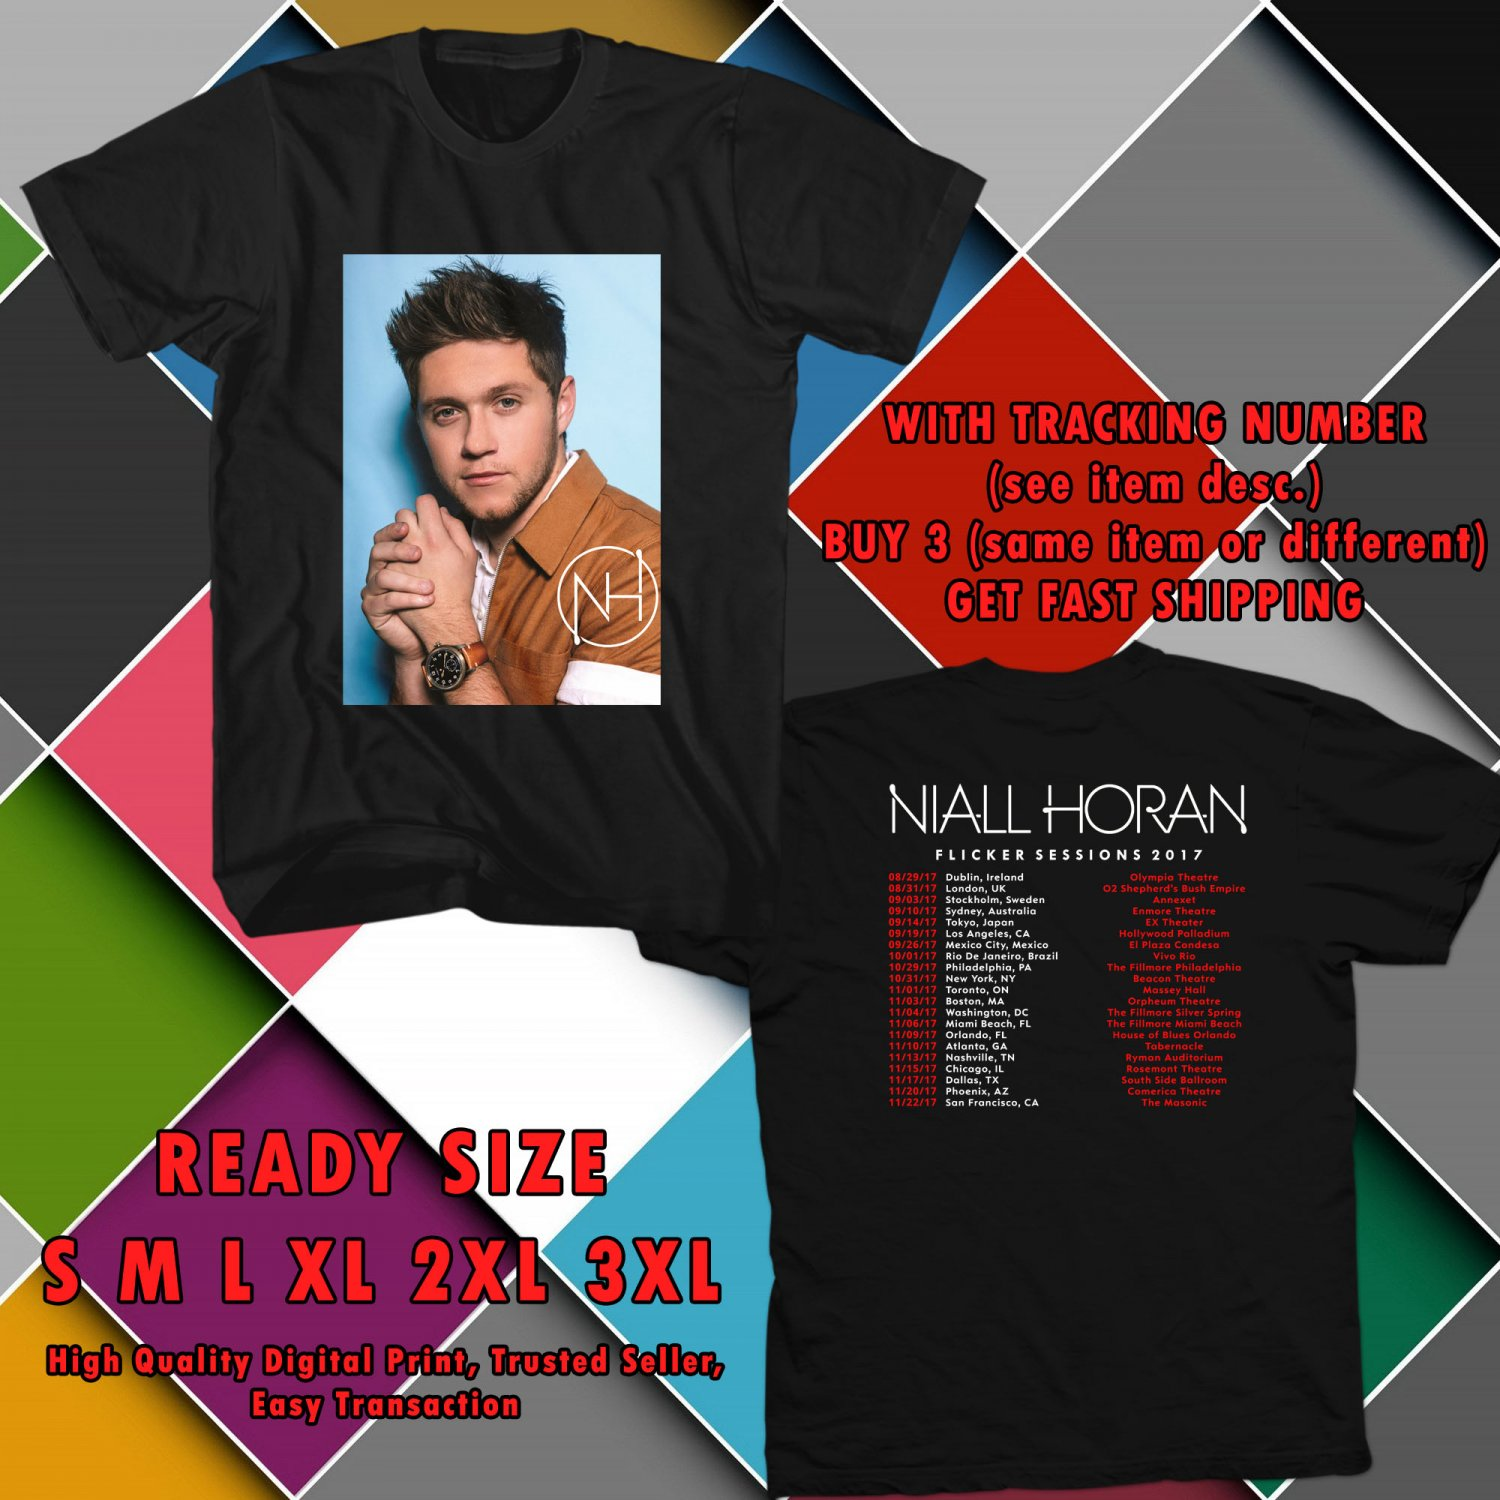 HITS NIALL HORAN FLICKER SESSIONS WORLD TOUR 2017 BLACK TEE'S 2SIDE MAN WOMEN ASTR 900